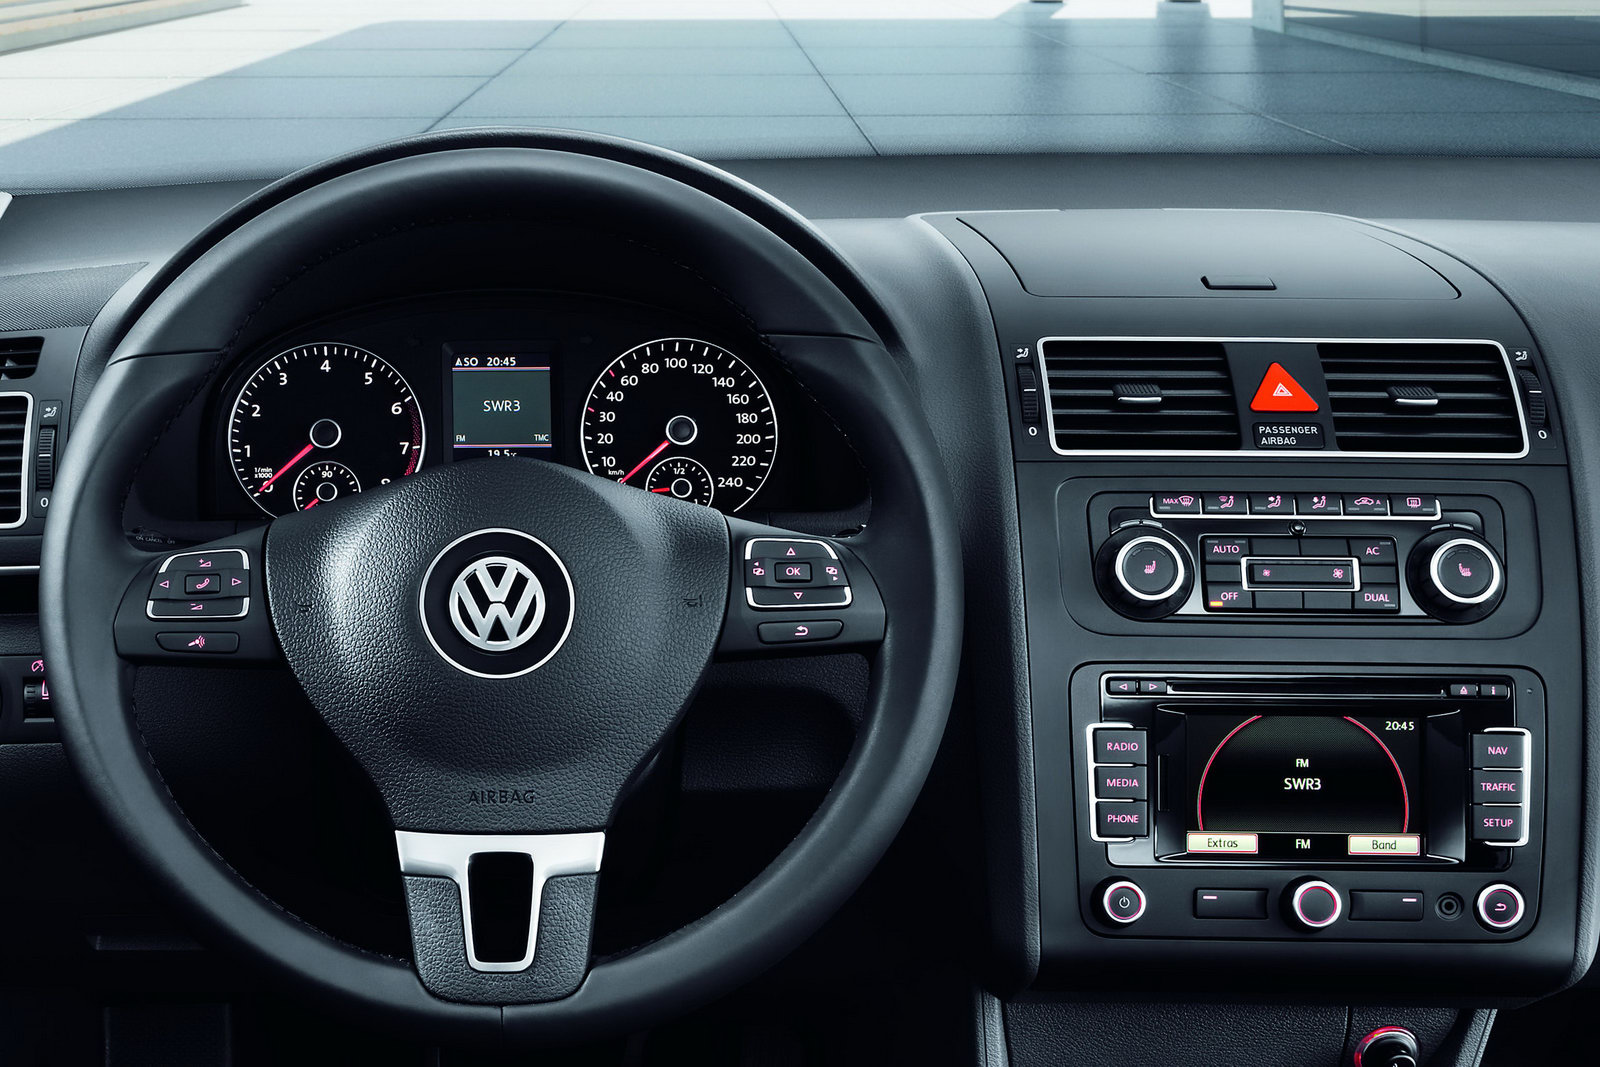 2011 Volkswagen Touran 7-Seater MPV Receives Second Mid-Life Facelift